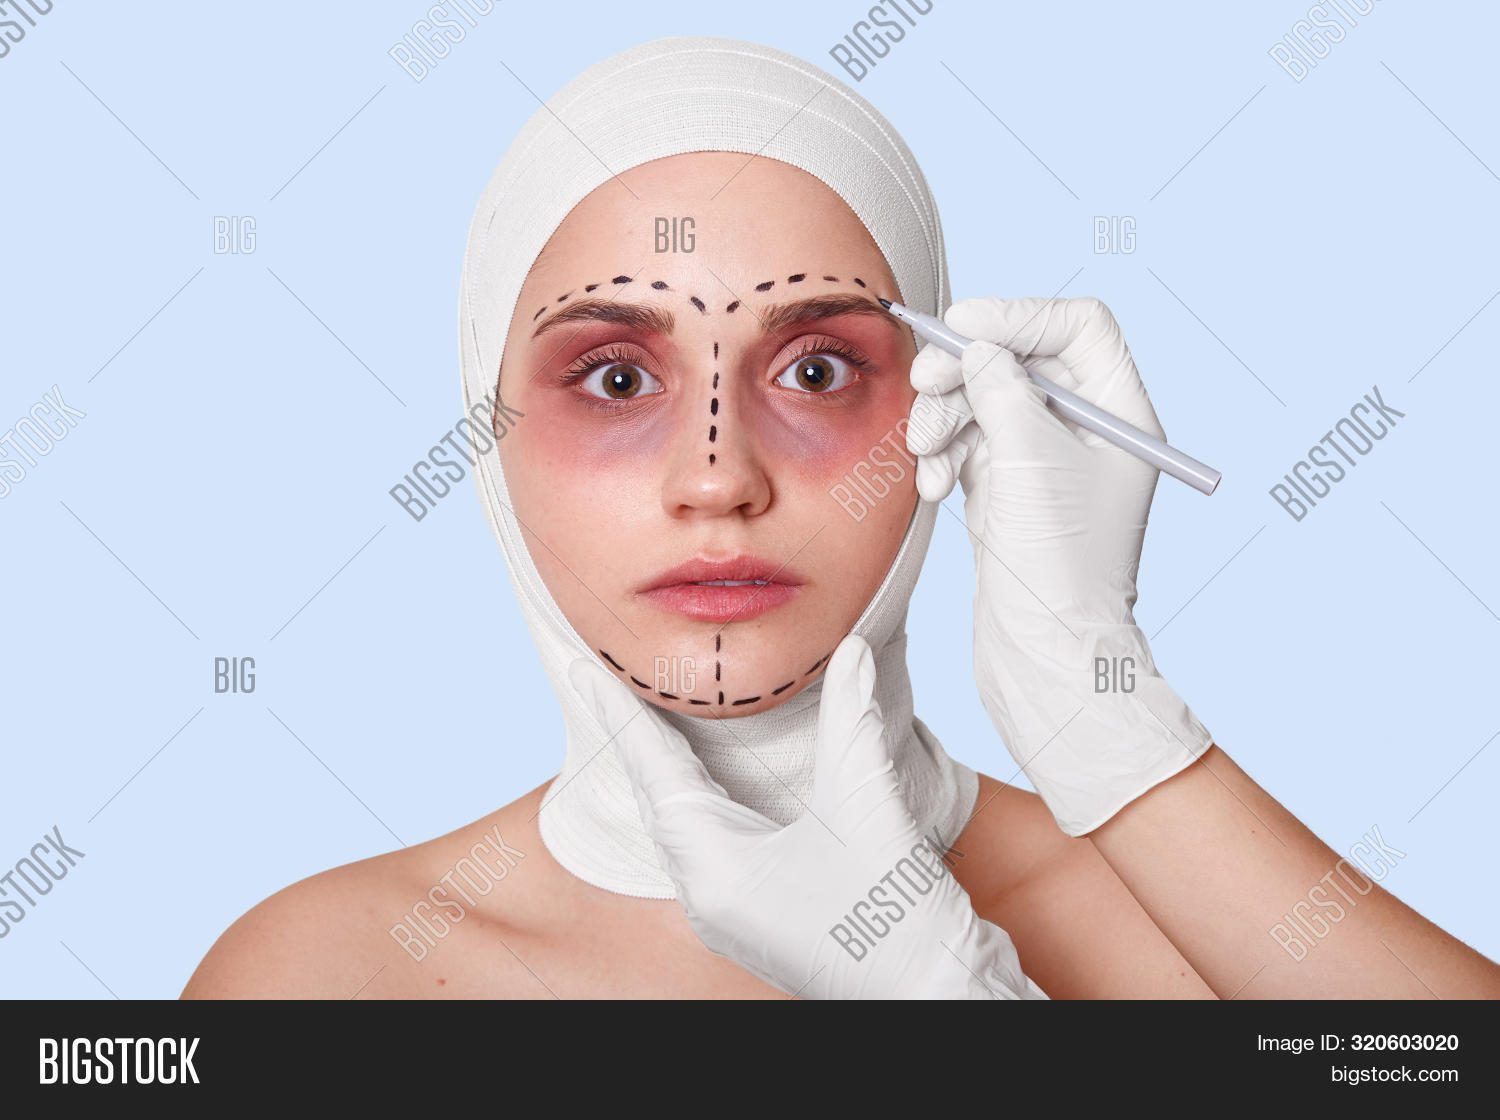 Image Of Woman Wants To Have Browlifting, Prepares For Beauty Treatments Or Facelifting, Has Bruises